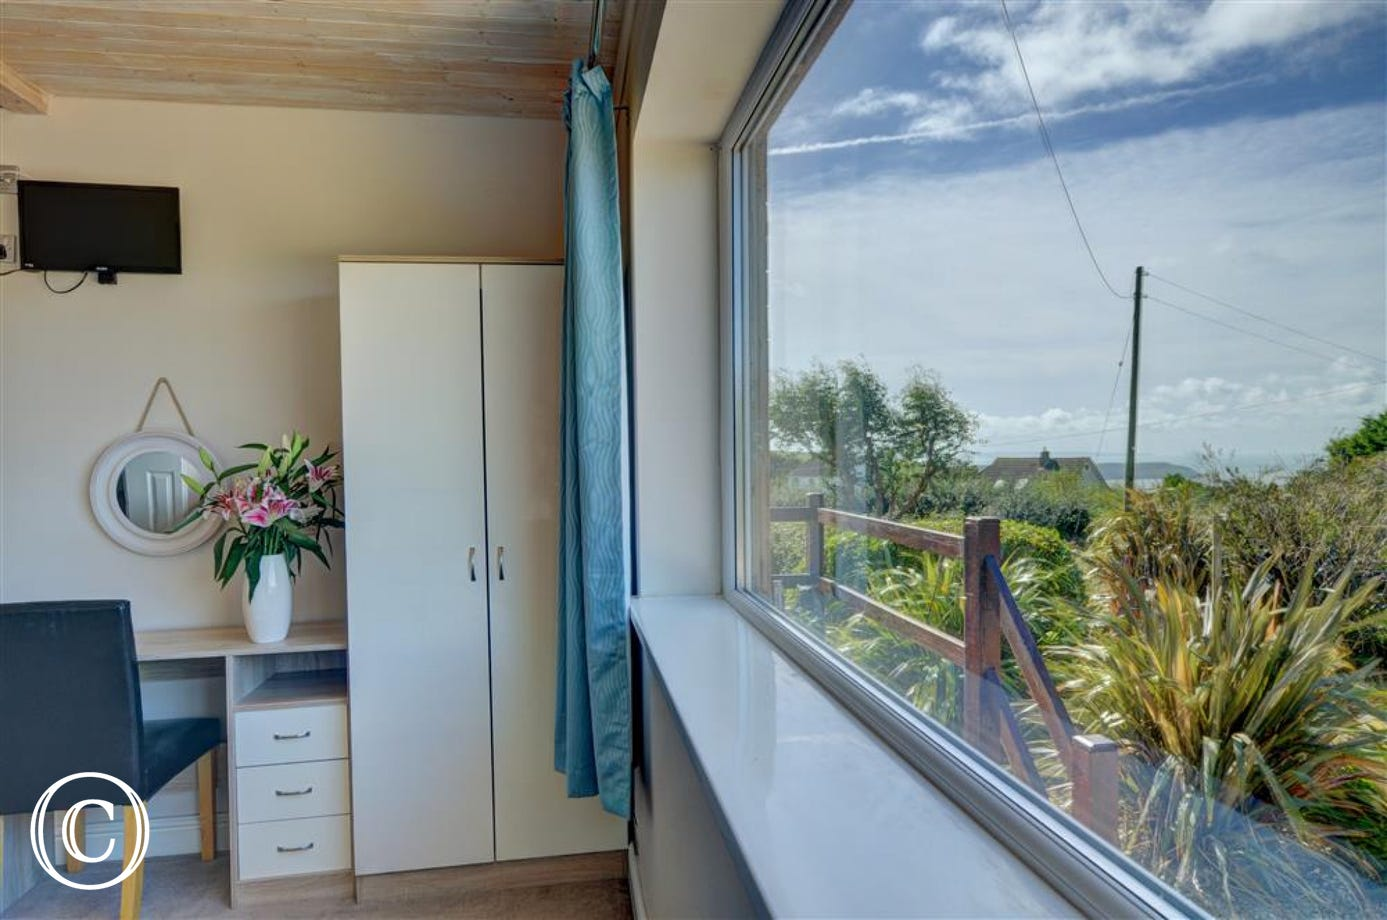 The double bedroom at the front of the property has lovely countryside and sea views